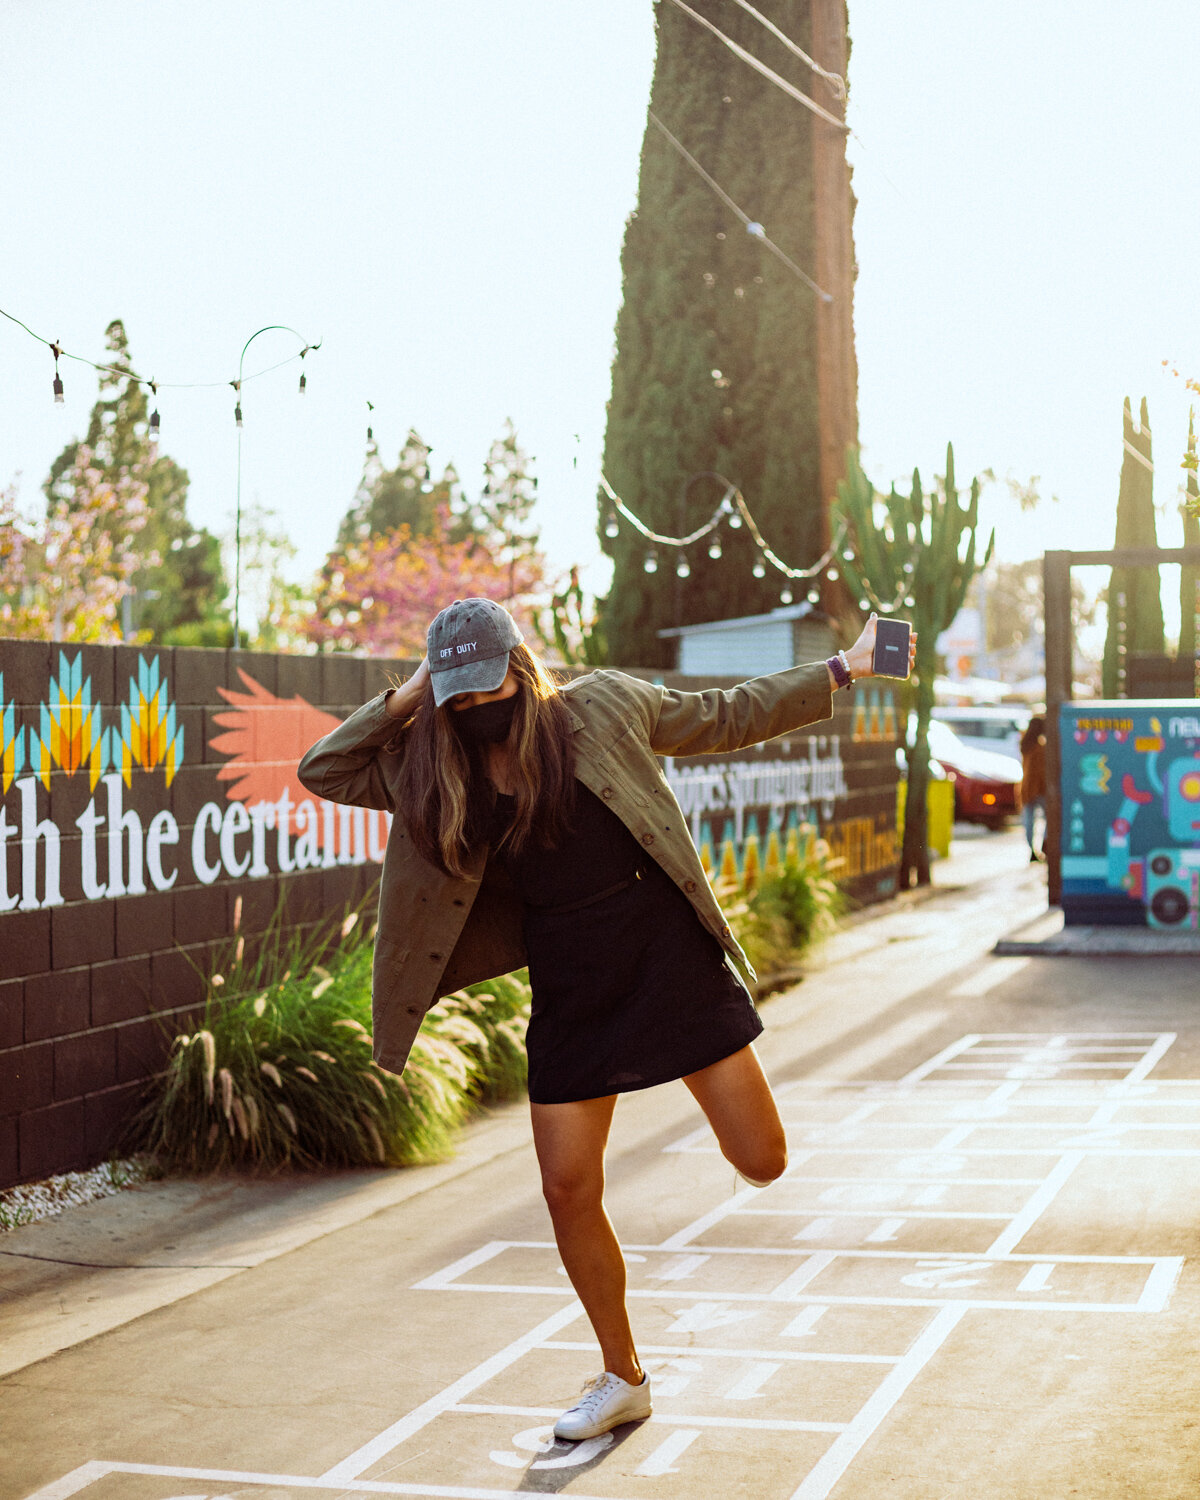 Rachel Off Duty: A Woman in a Dress Playing Hopscotch at The LAB in Costa Mesa